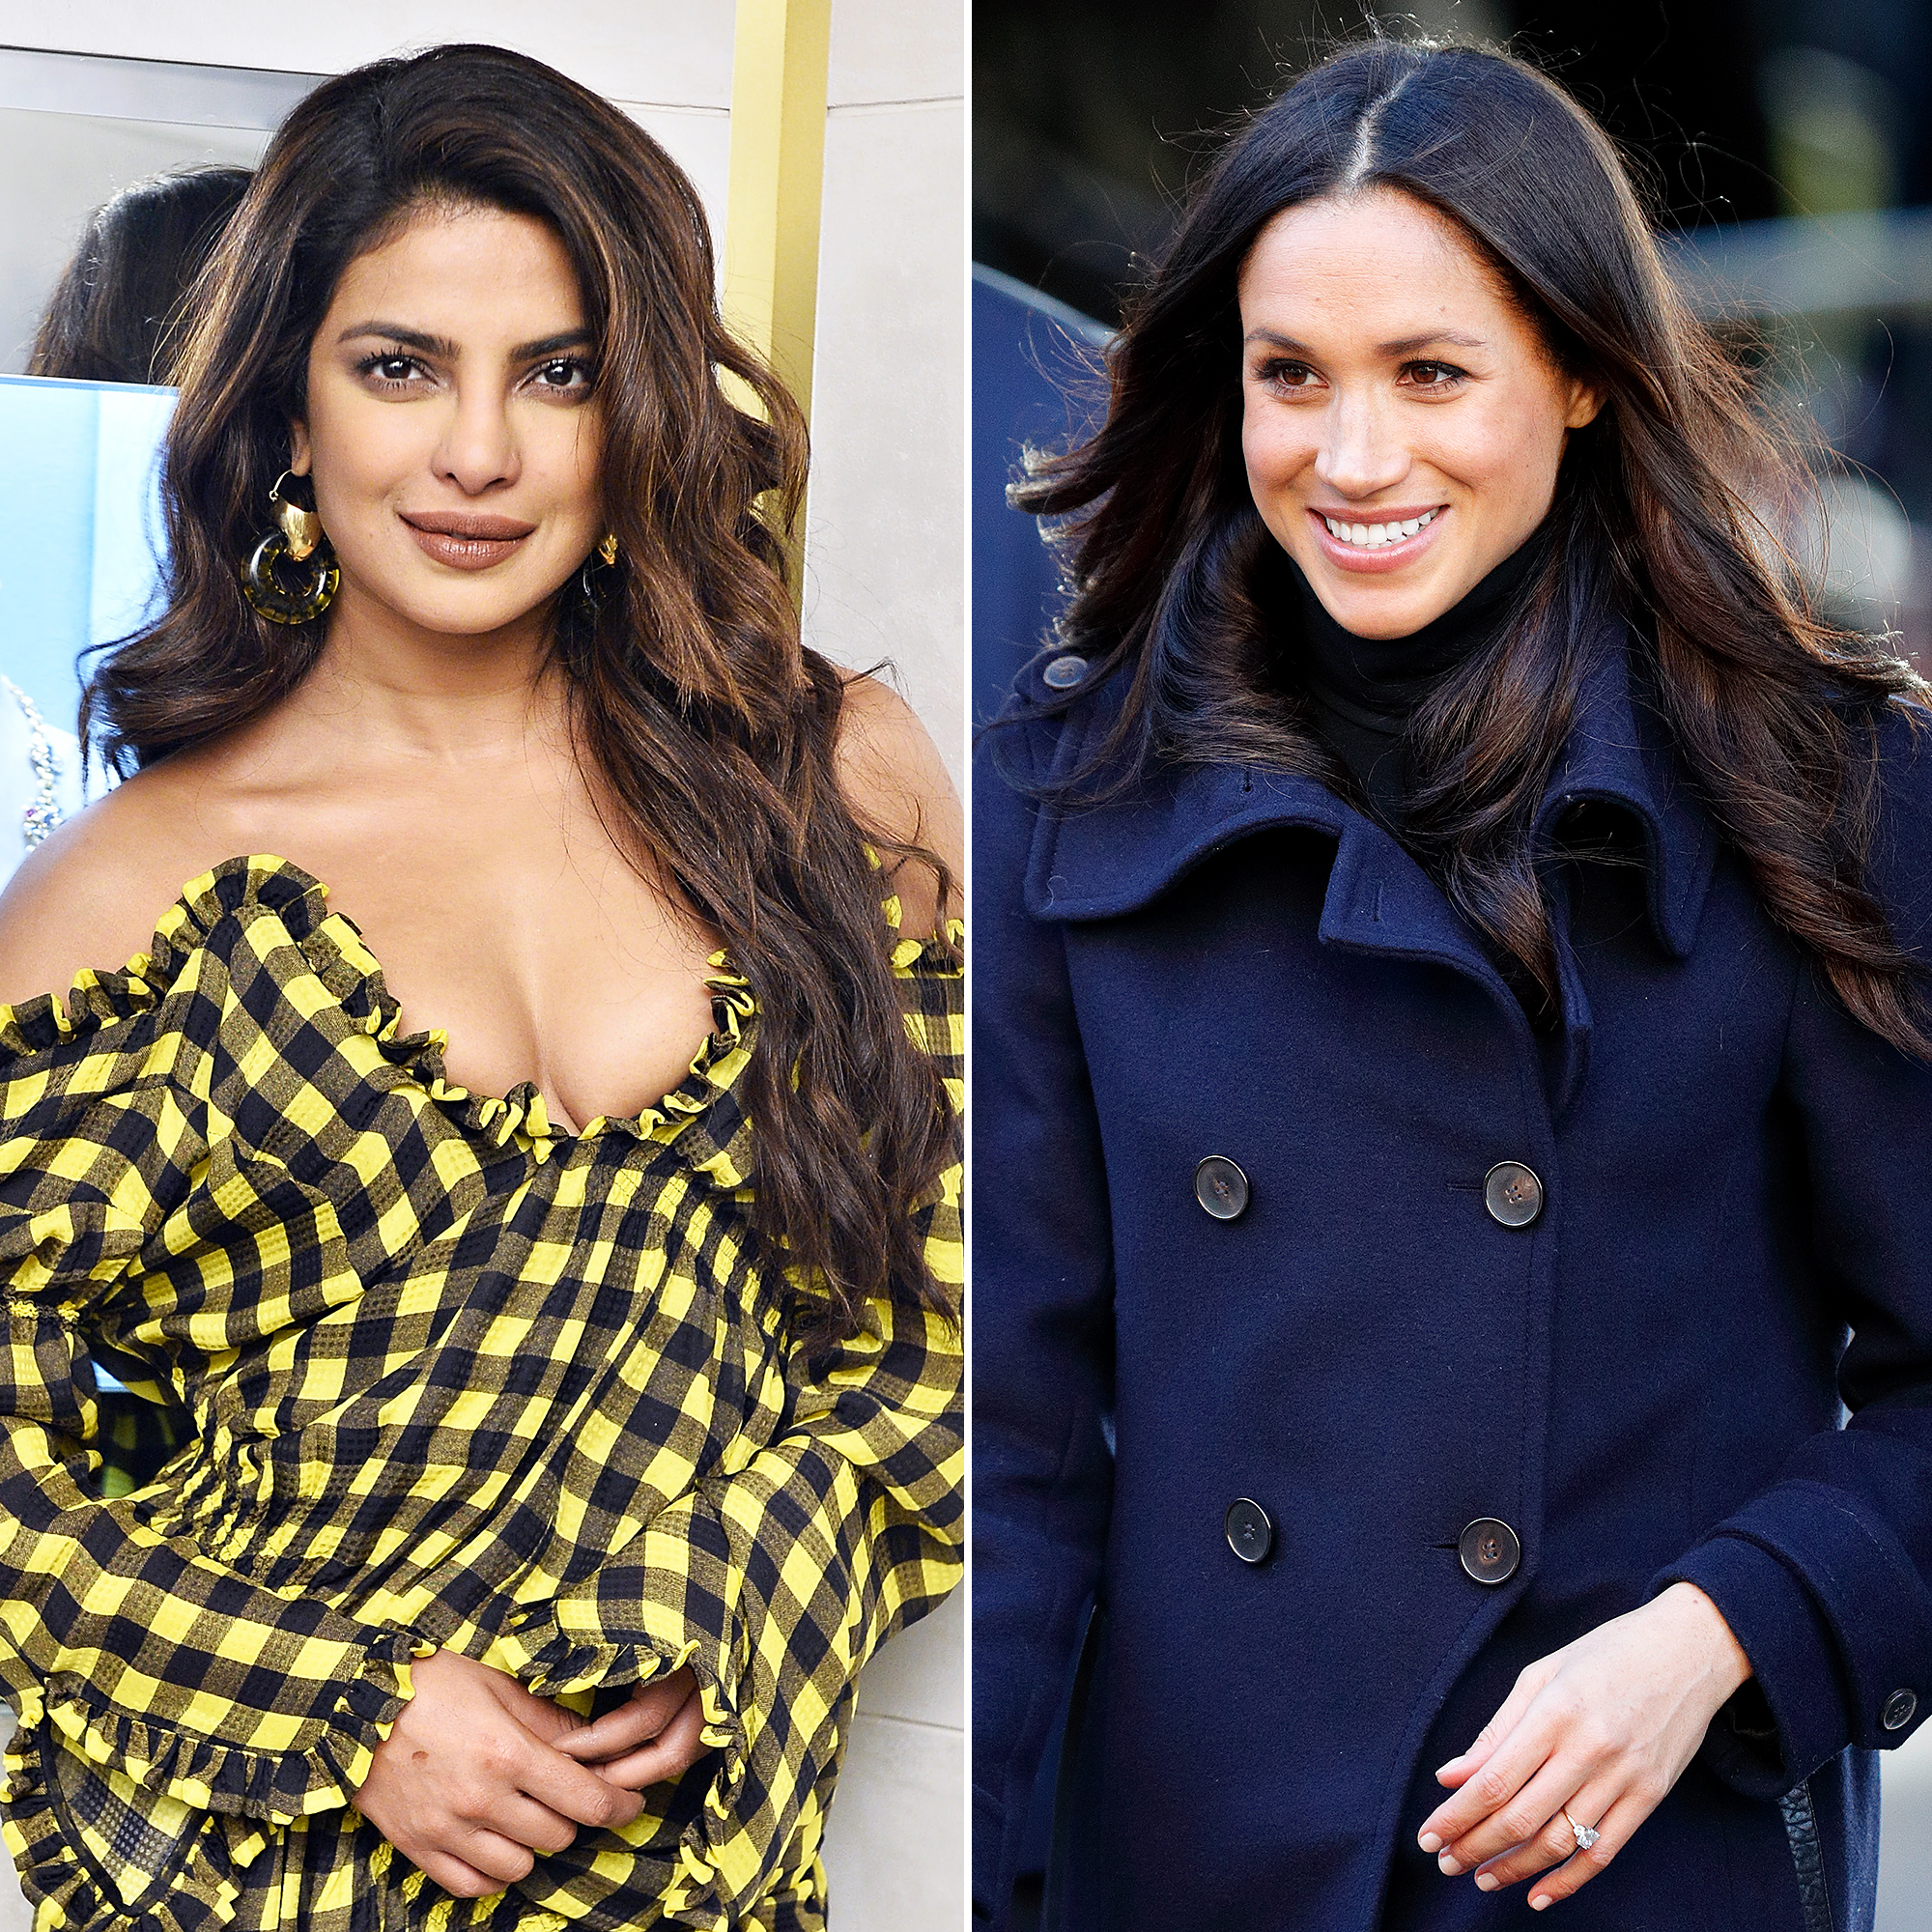 Priyanka Chopra was 'scammed' into talking about Meghan Markle's wedding